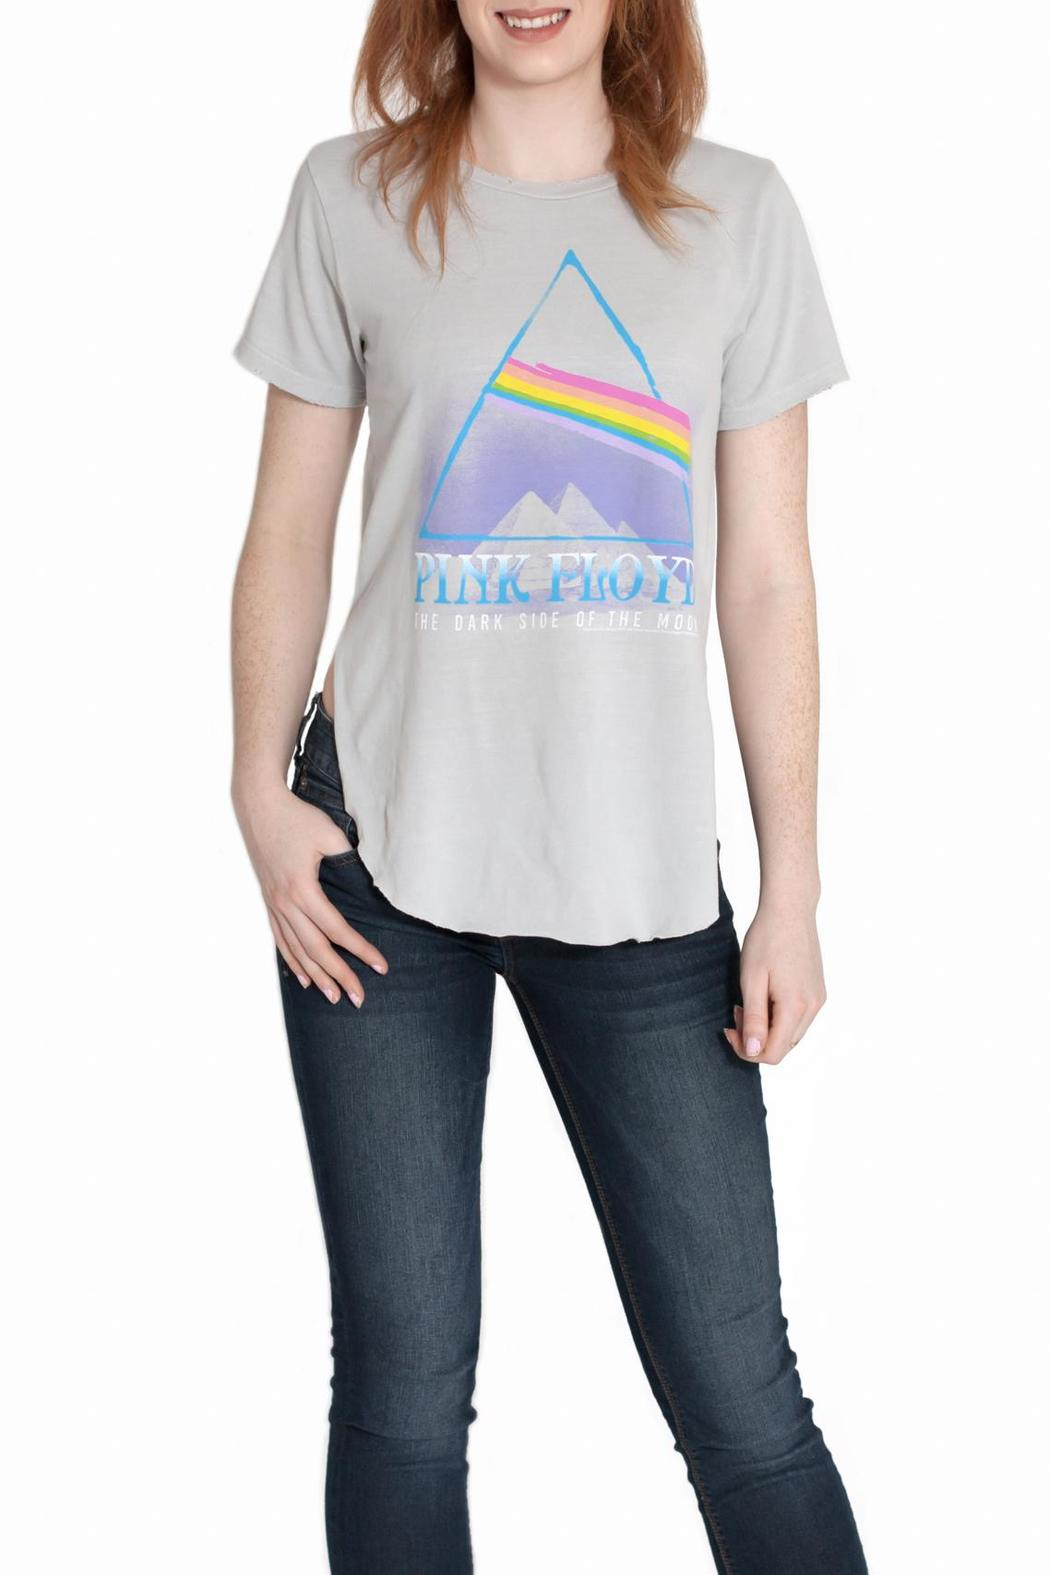 Junk Food Clothing Pink Floyd Tee - Main Image